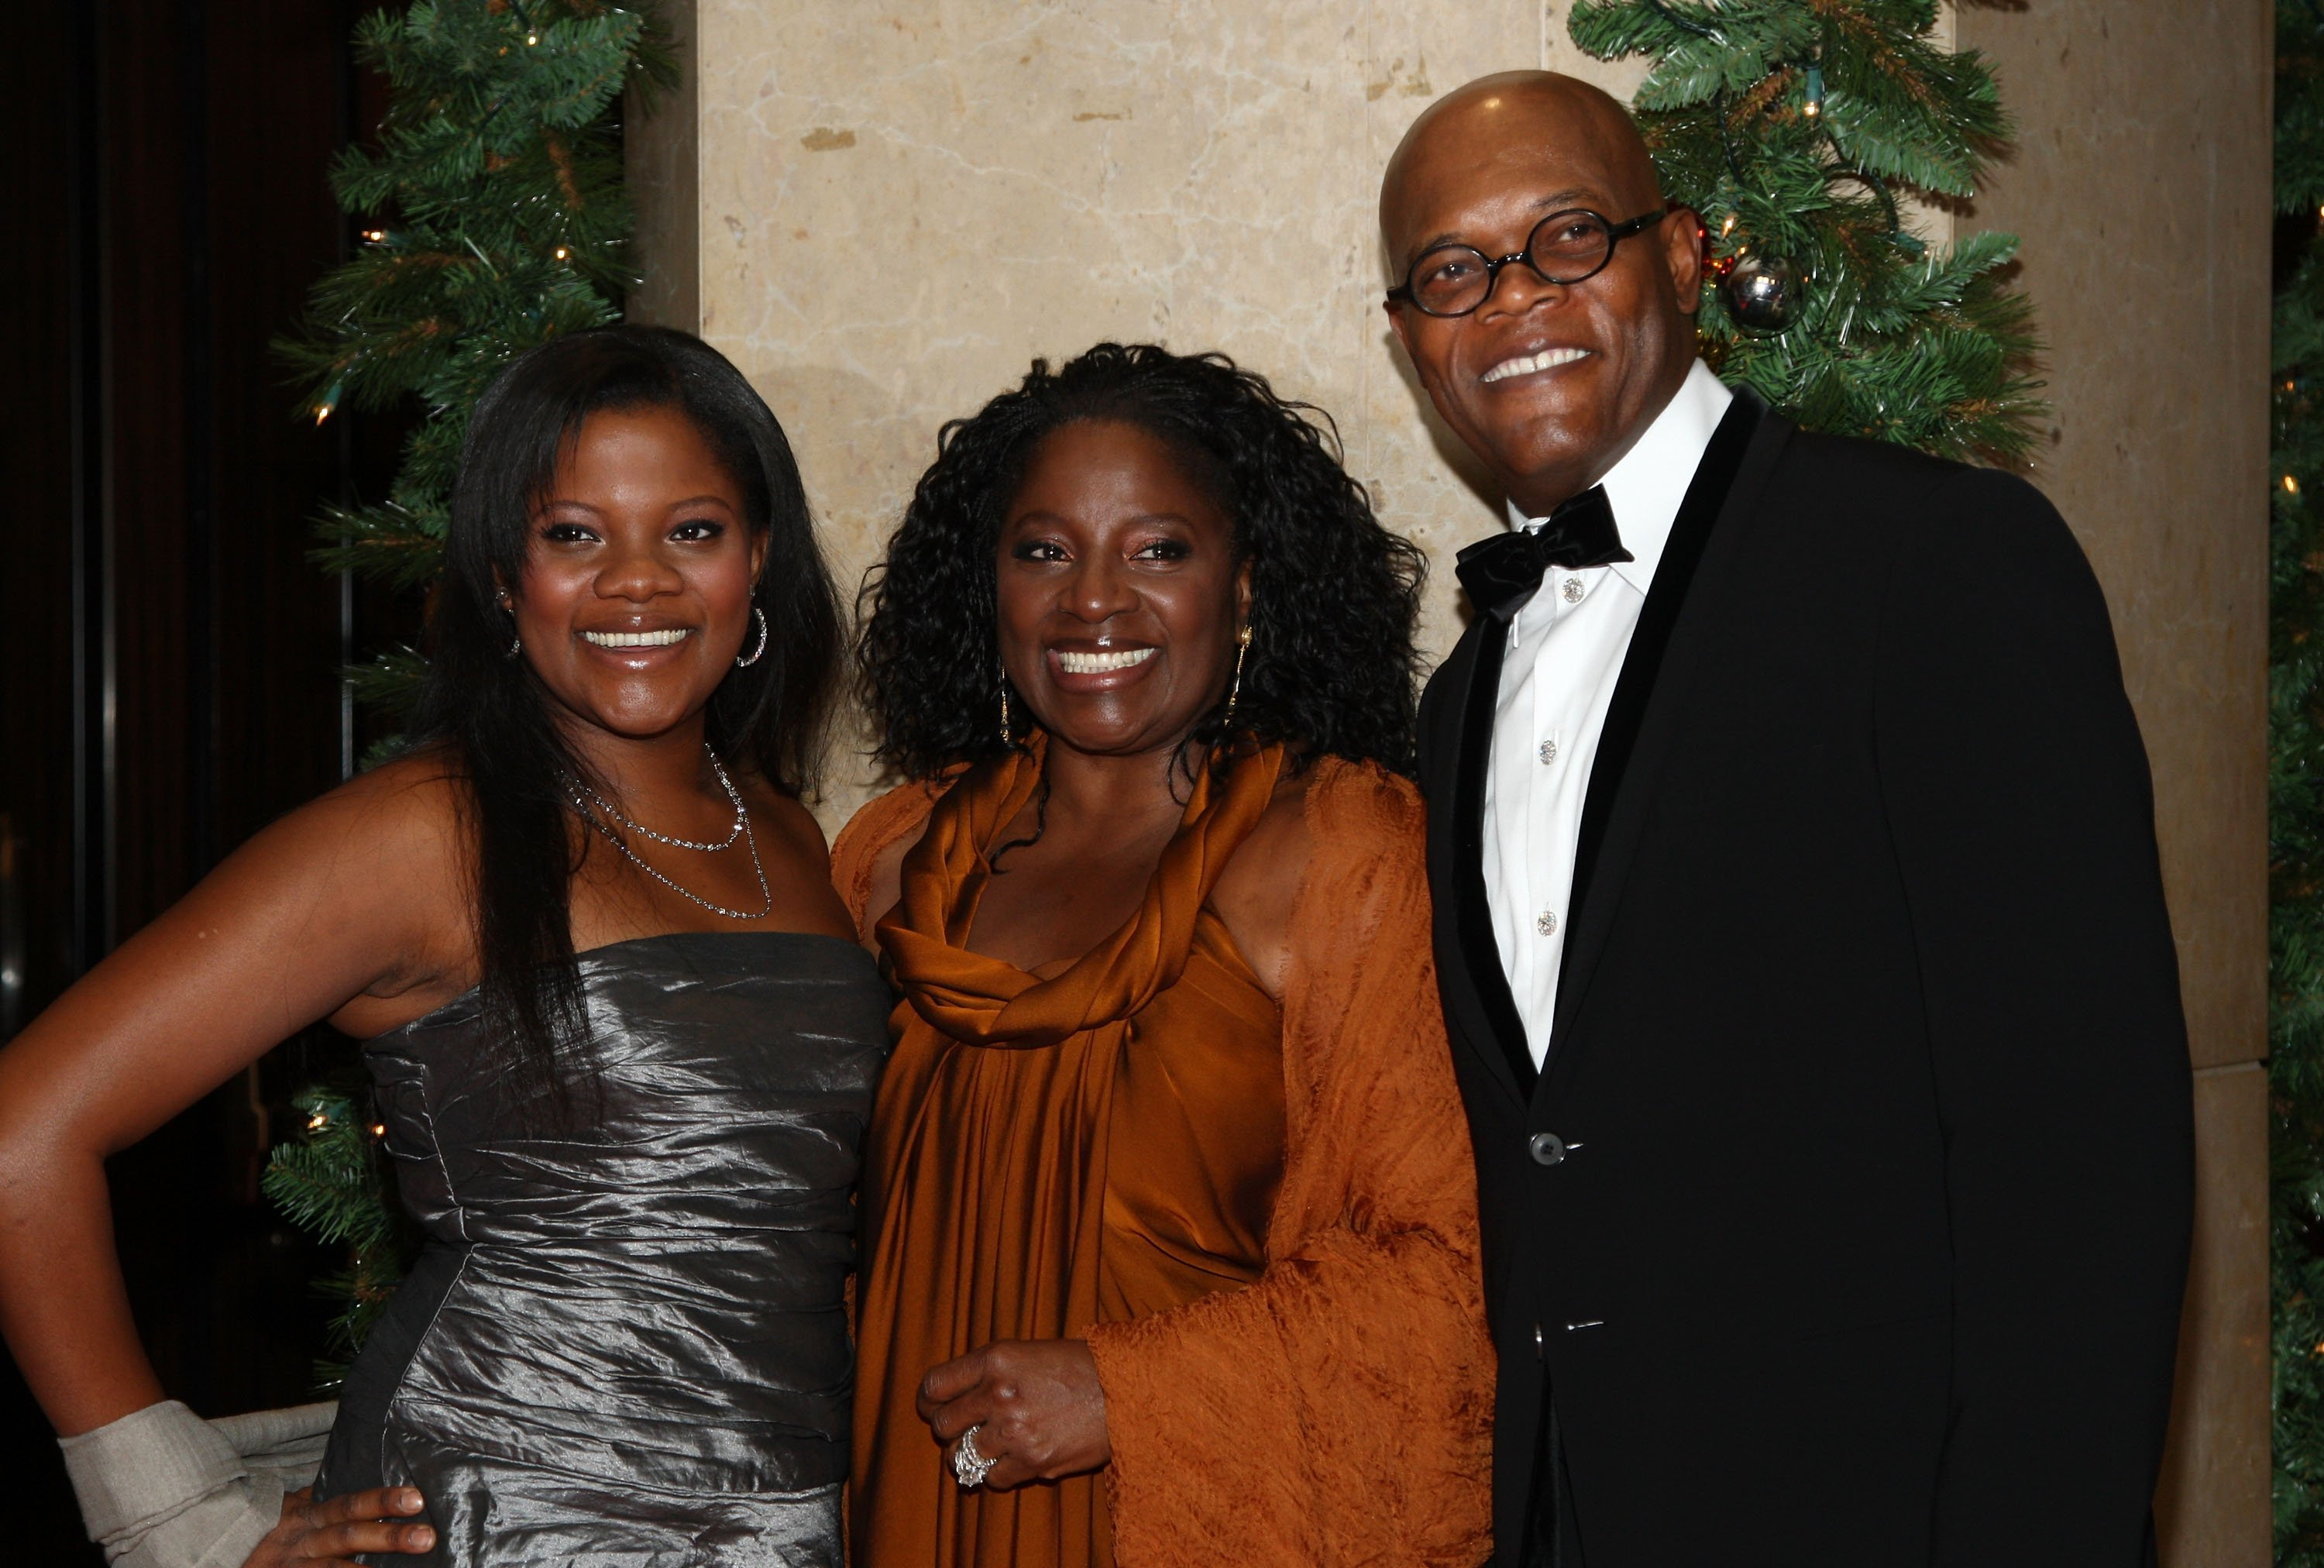 Samuel L. Jackson (far R), LaTanya Richardson (C) & daughter Zoe Jackson at the 23rd annual American Cinematheque show on Dec. 1, 2008 in Beverly Hills | Photo: Getty Images